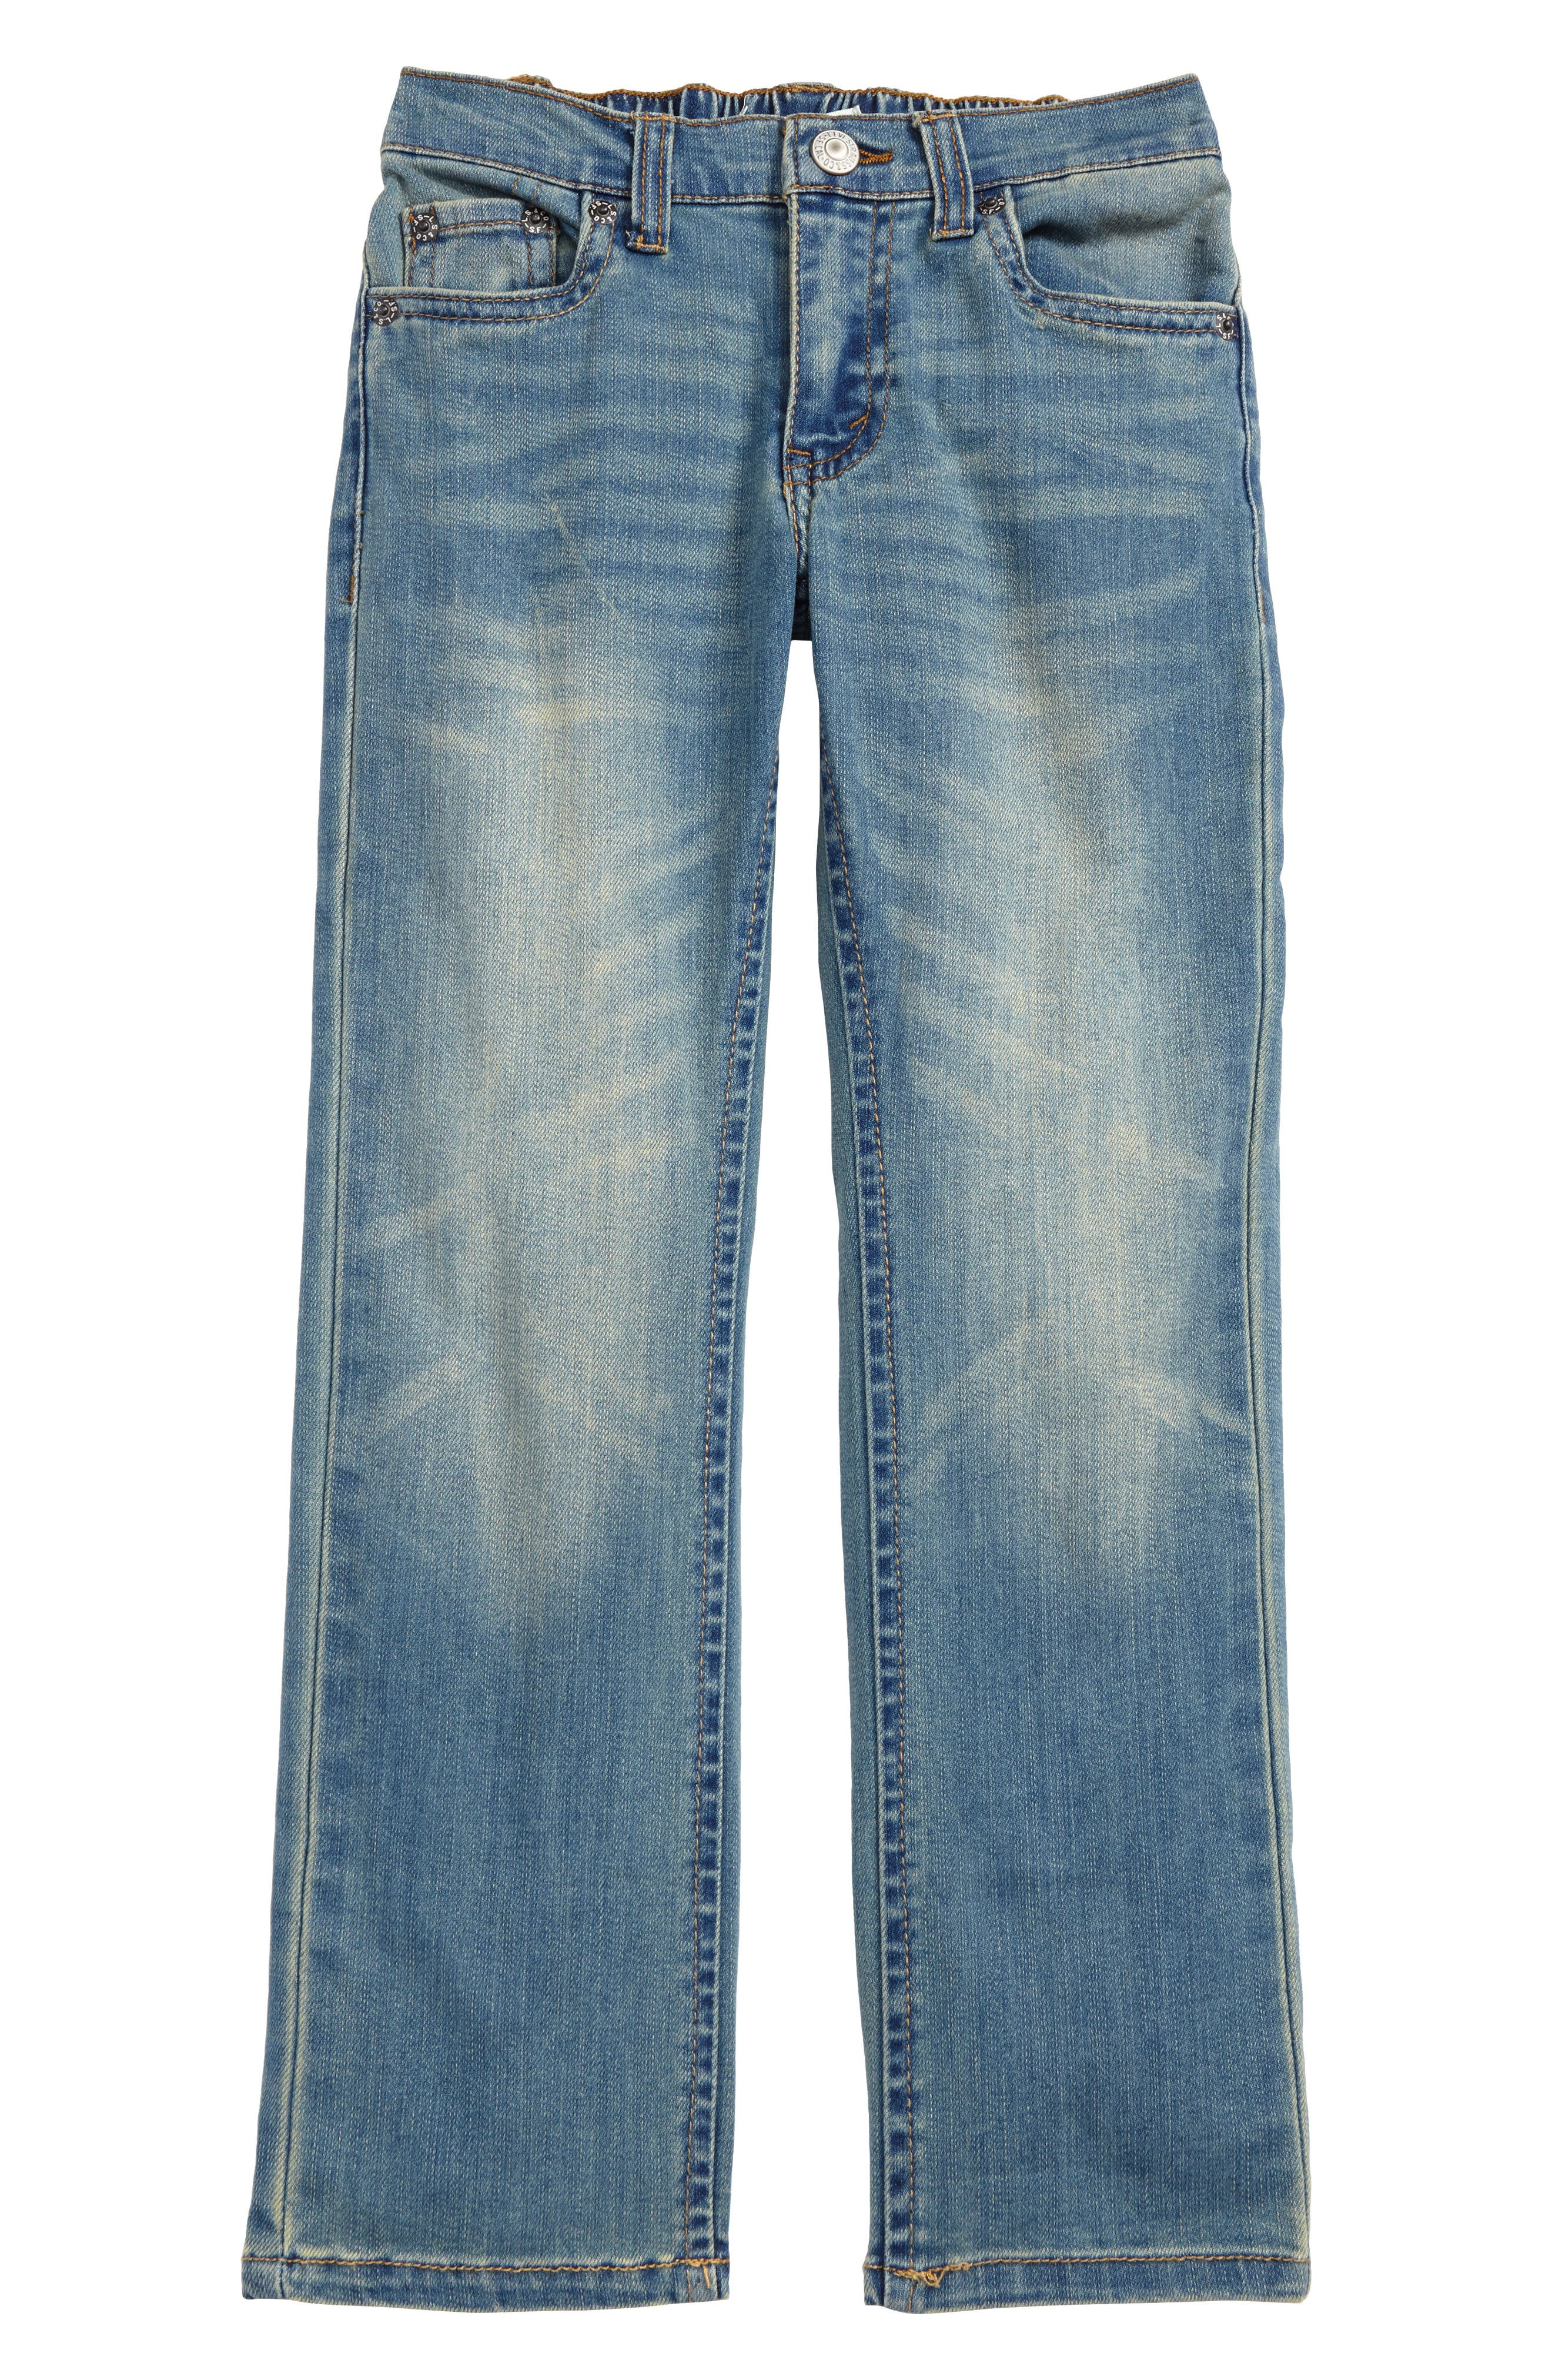 Main Image - Levi's® Comfort Slim Fit Jeans (Toddler Boys & Little Boys)